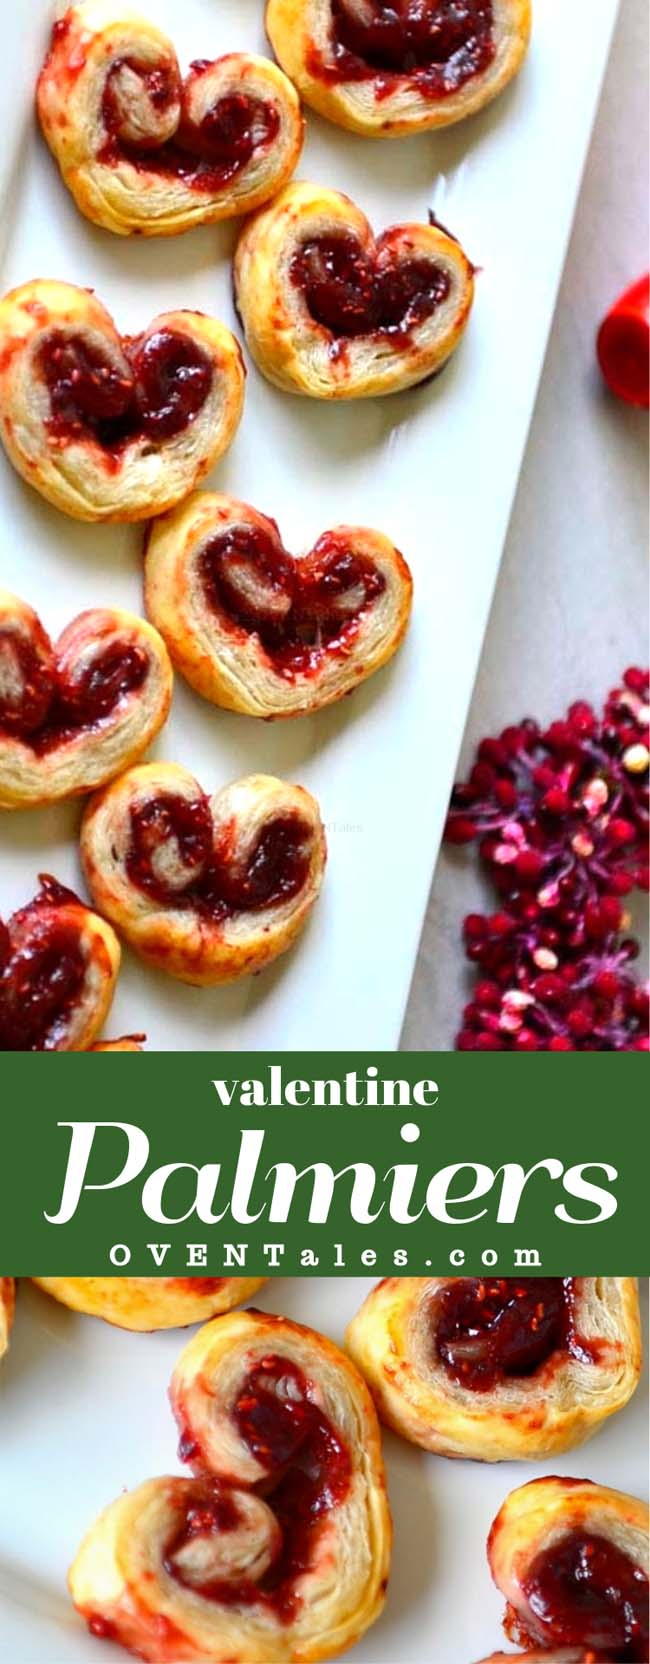 Valentine Palmiers - Cruchy heart shaped cookies filled with jam